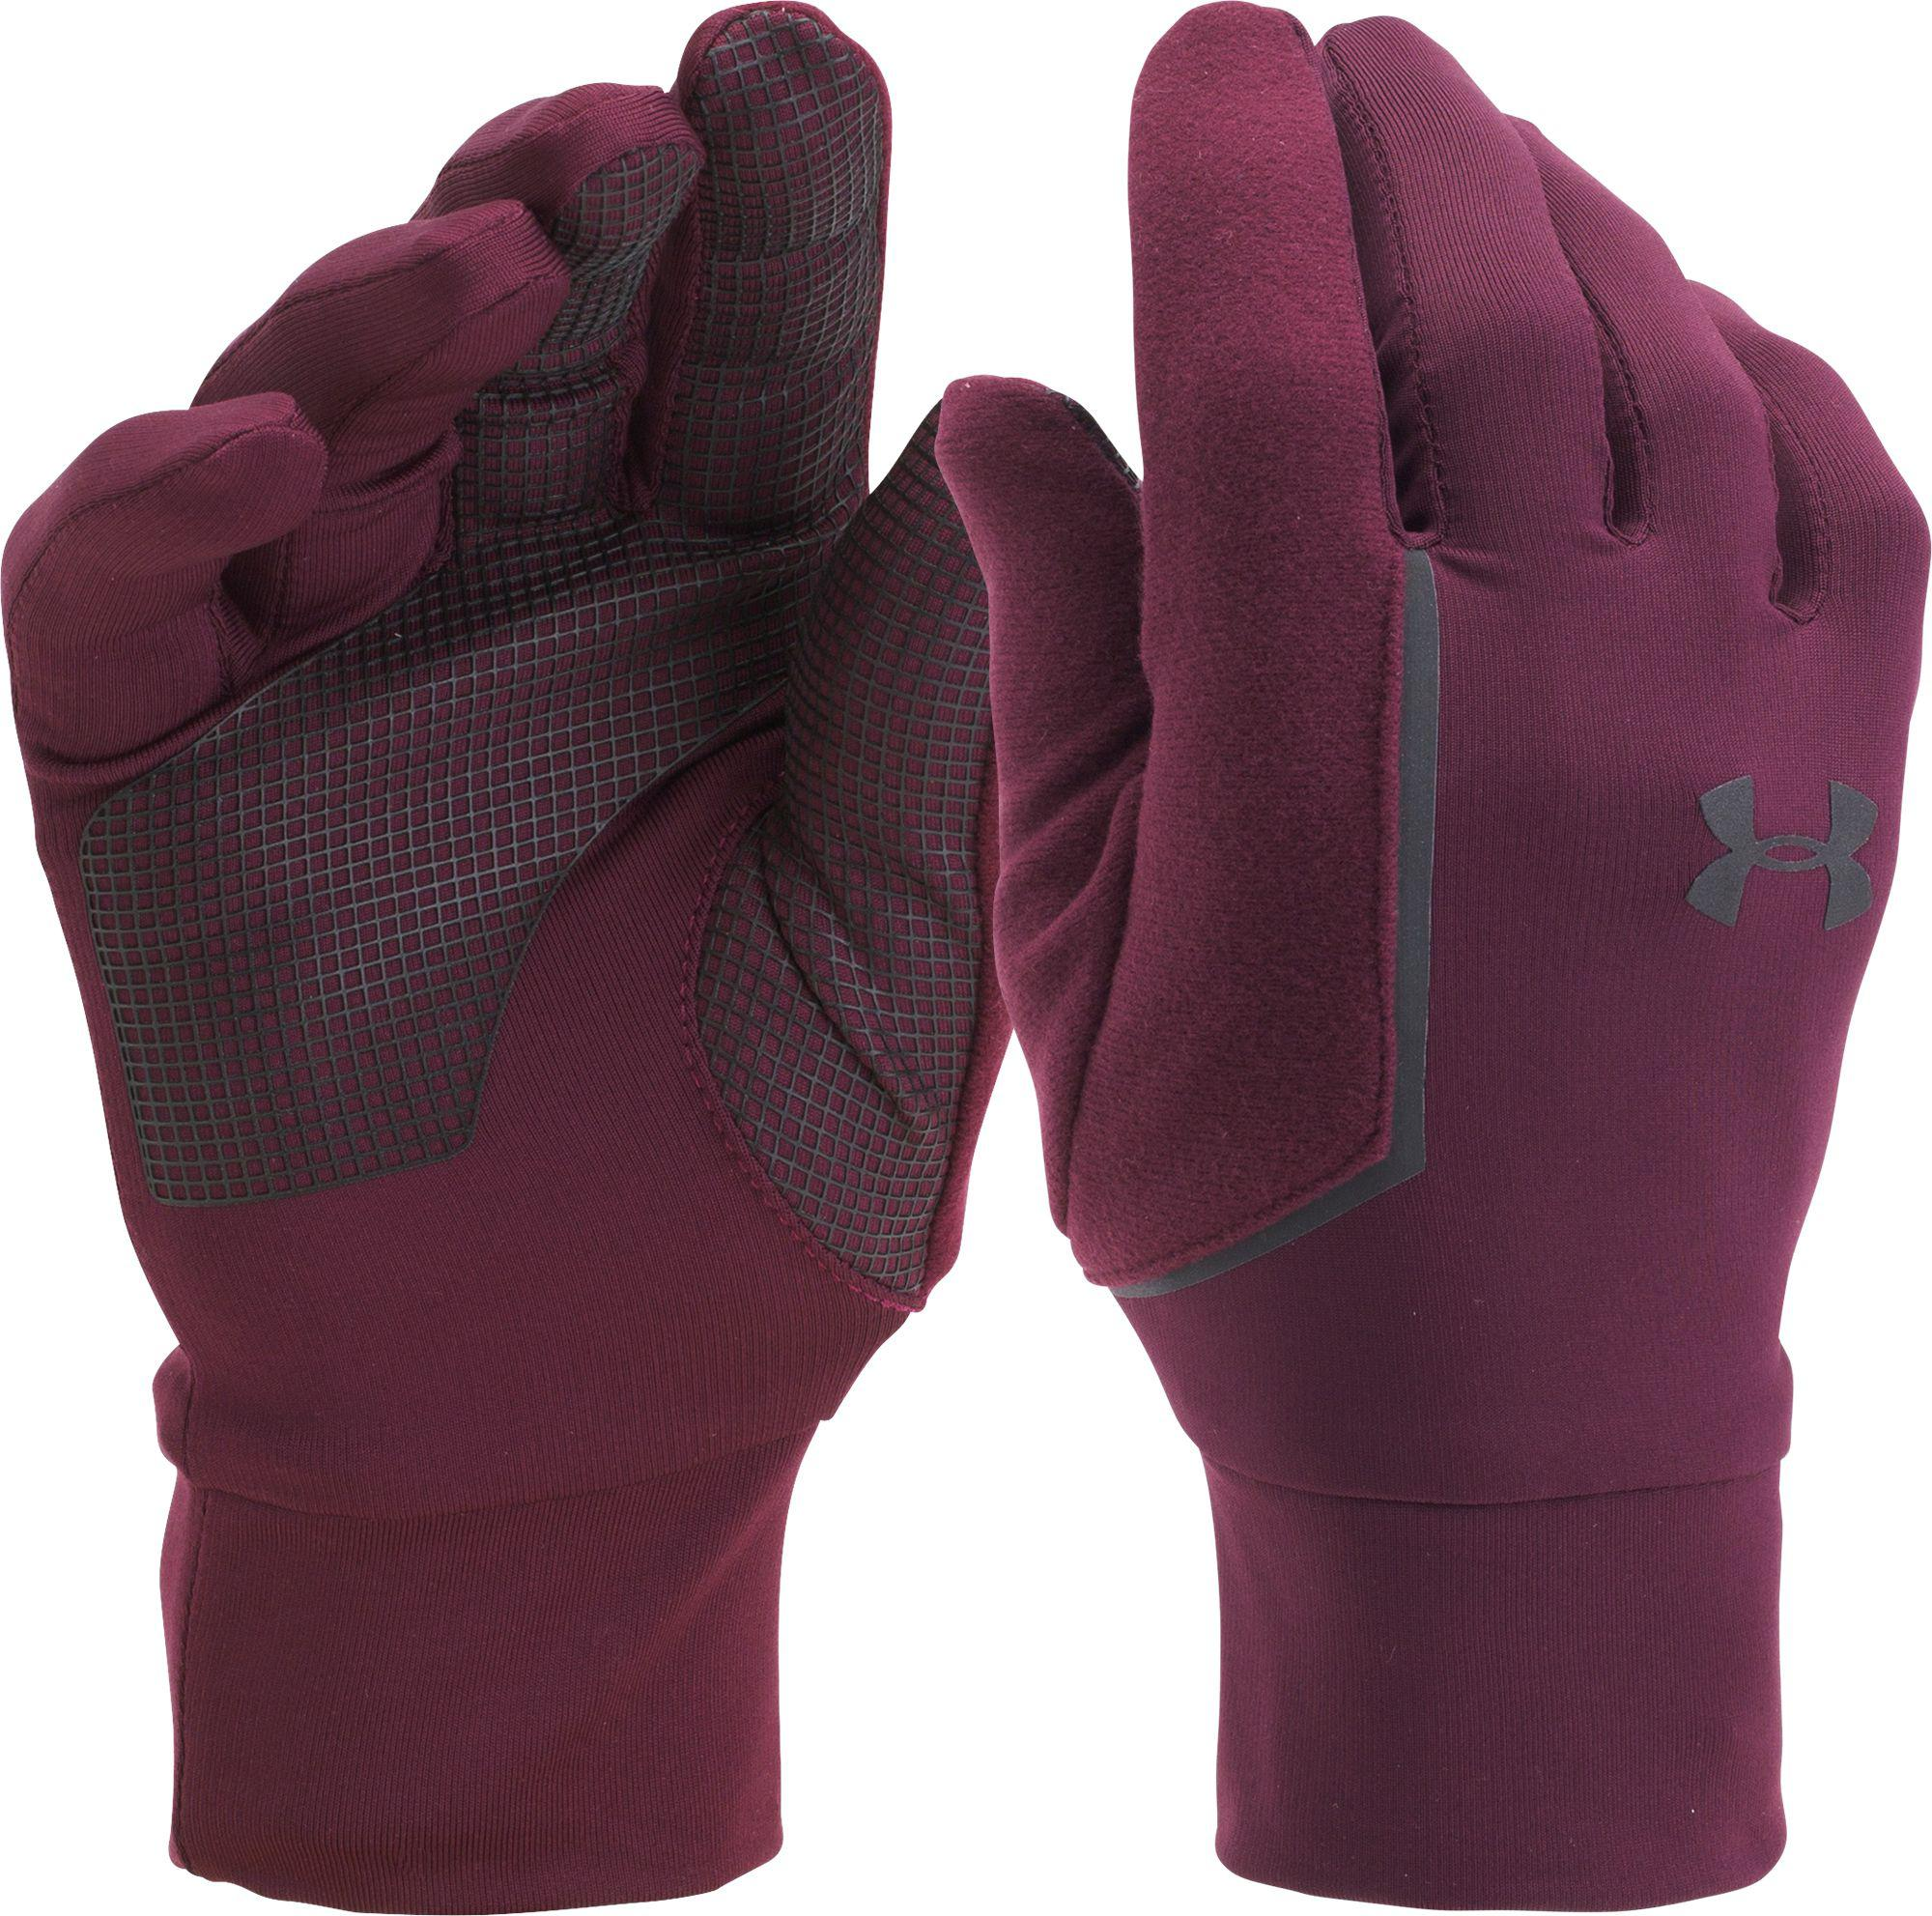 82aca0a6e4 Under Armour No Breaks Armour Liner Gloves in Red for Men - Save 25 ...